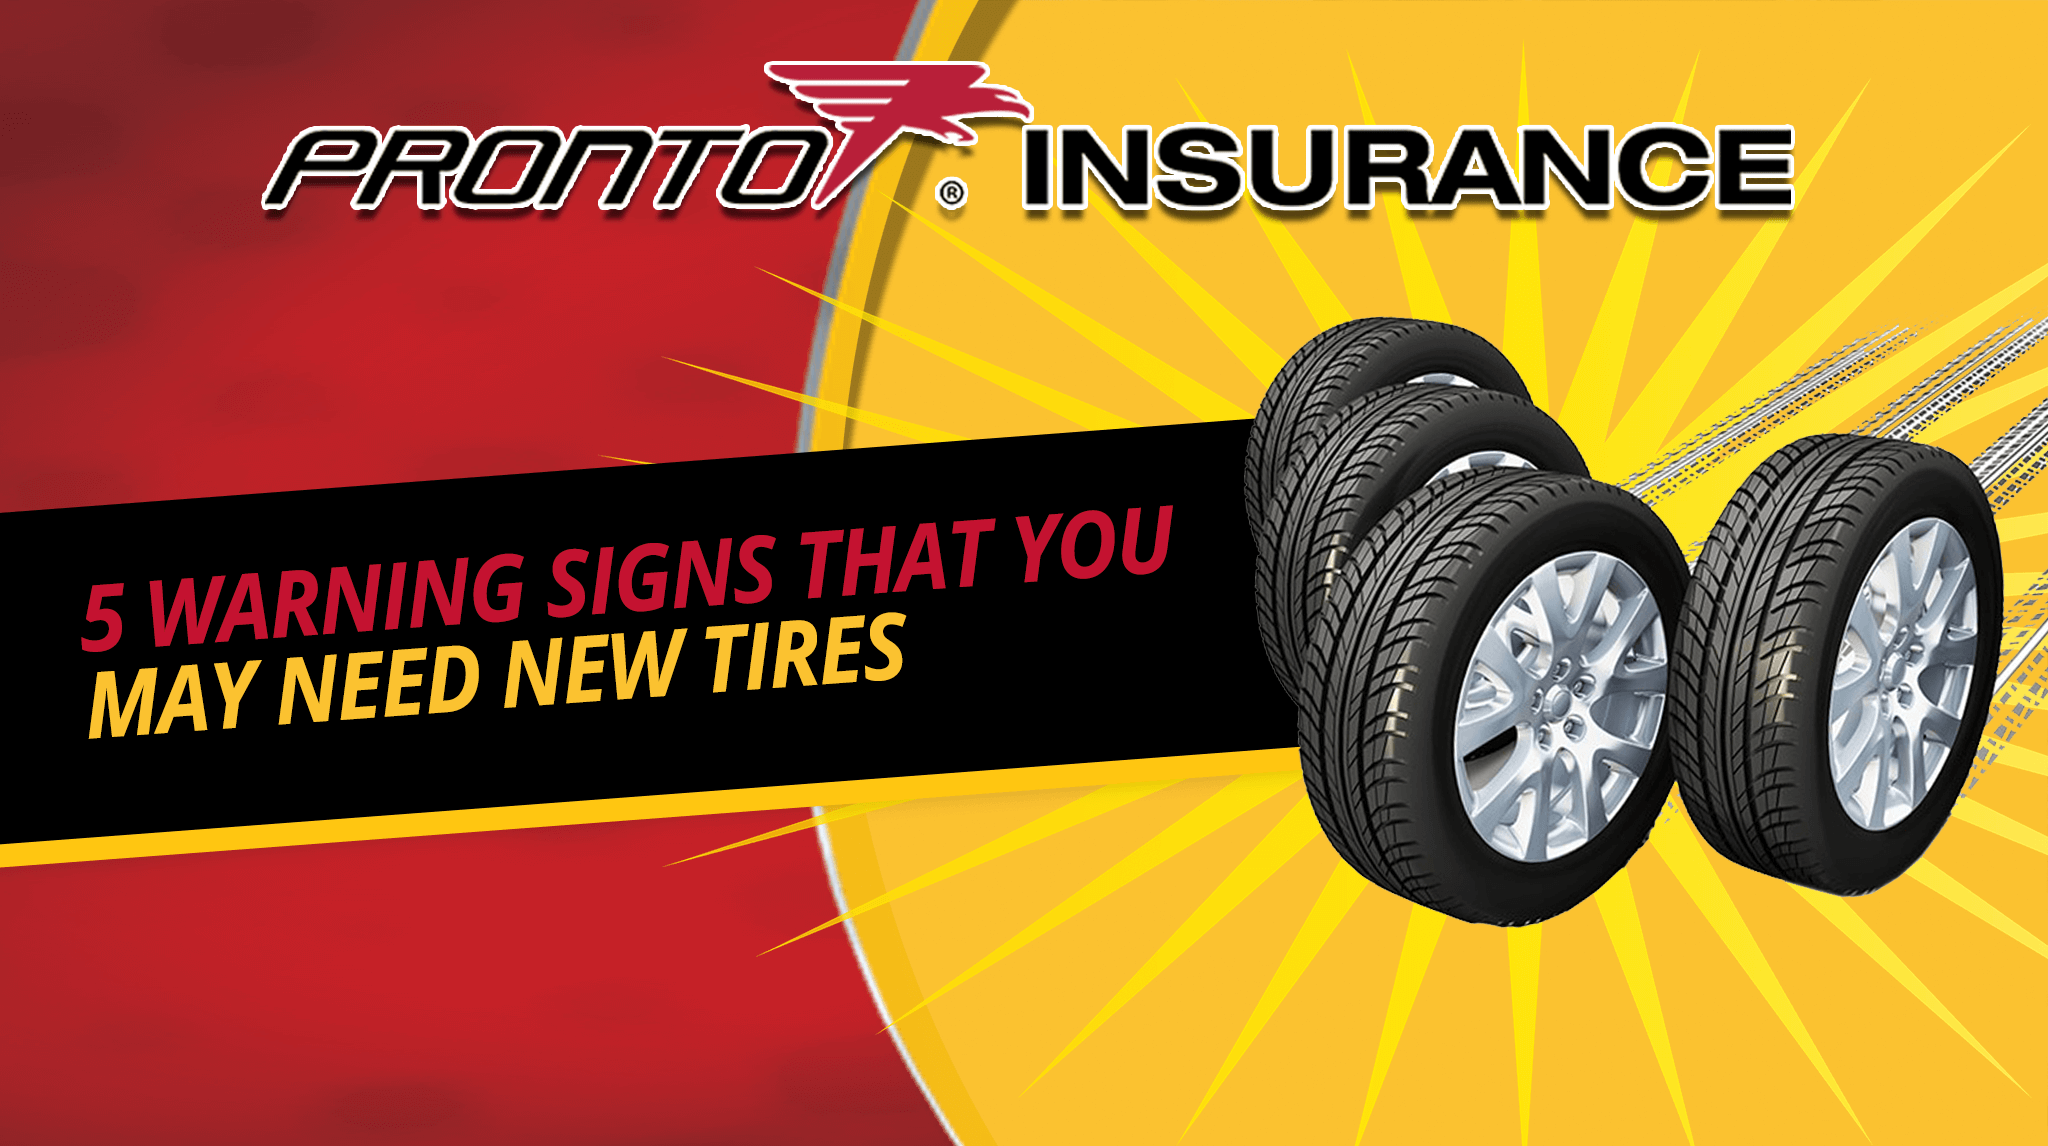 5 Warning Signs That You May Need New Tires